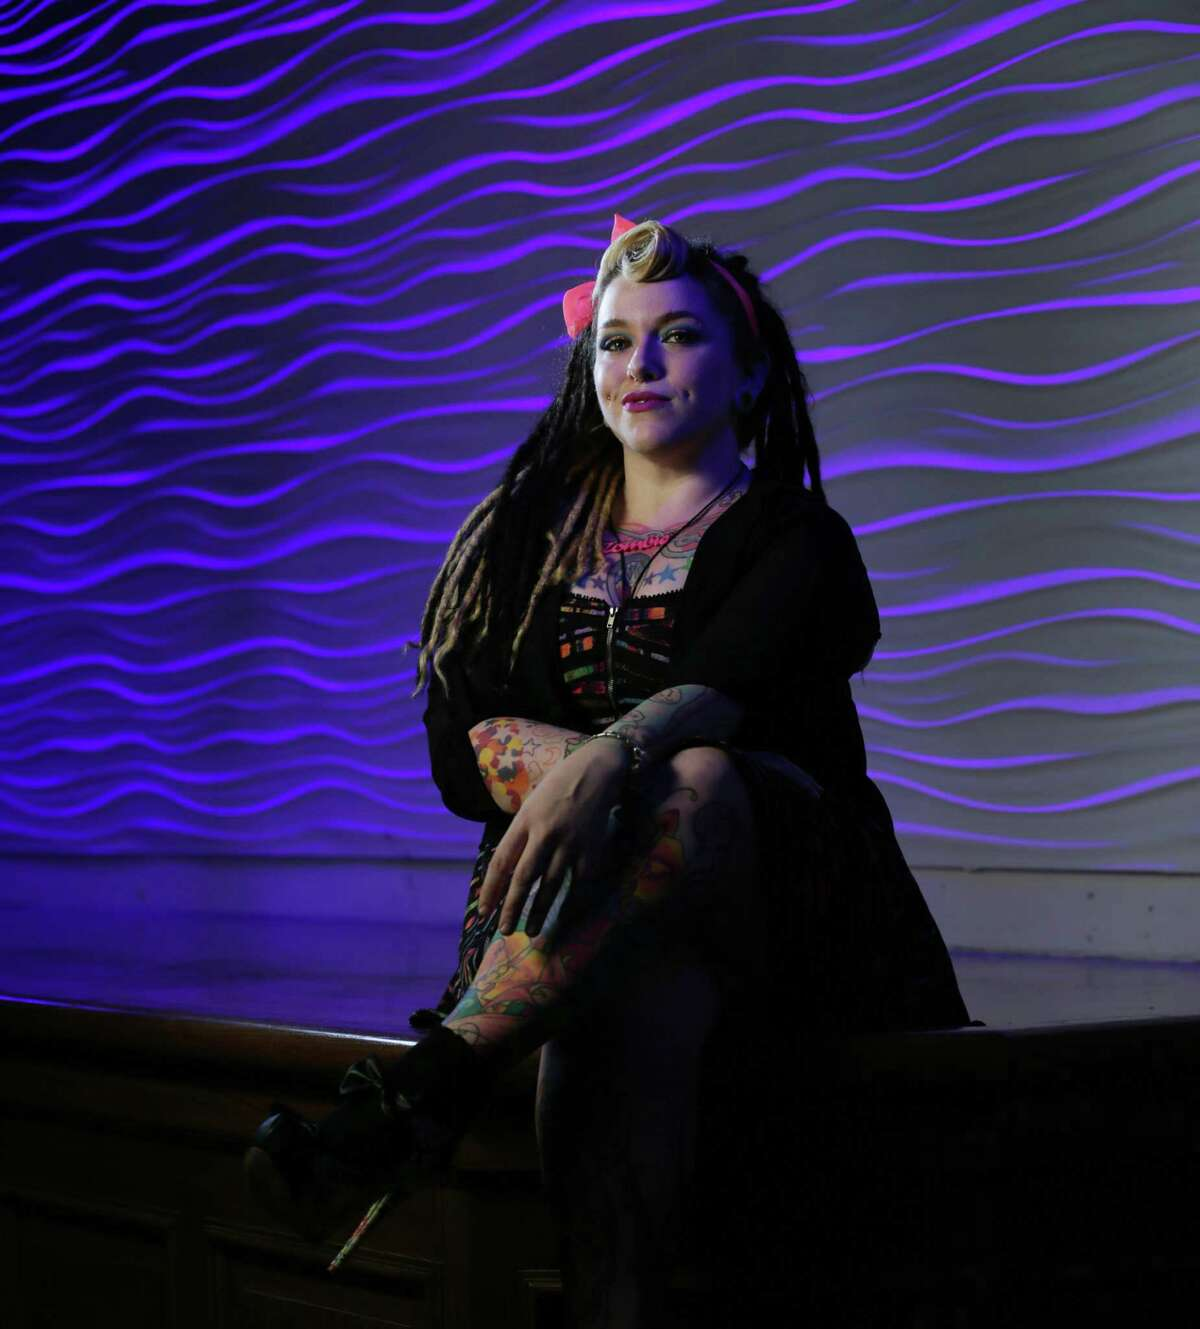 Nina Lombardo is passionate about her high heels. The performer says she has about 80 pairs.